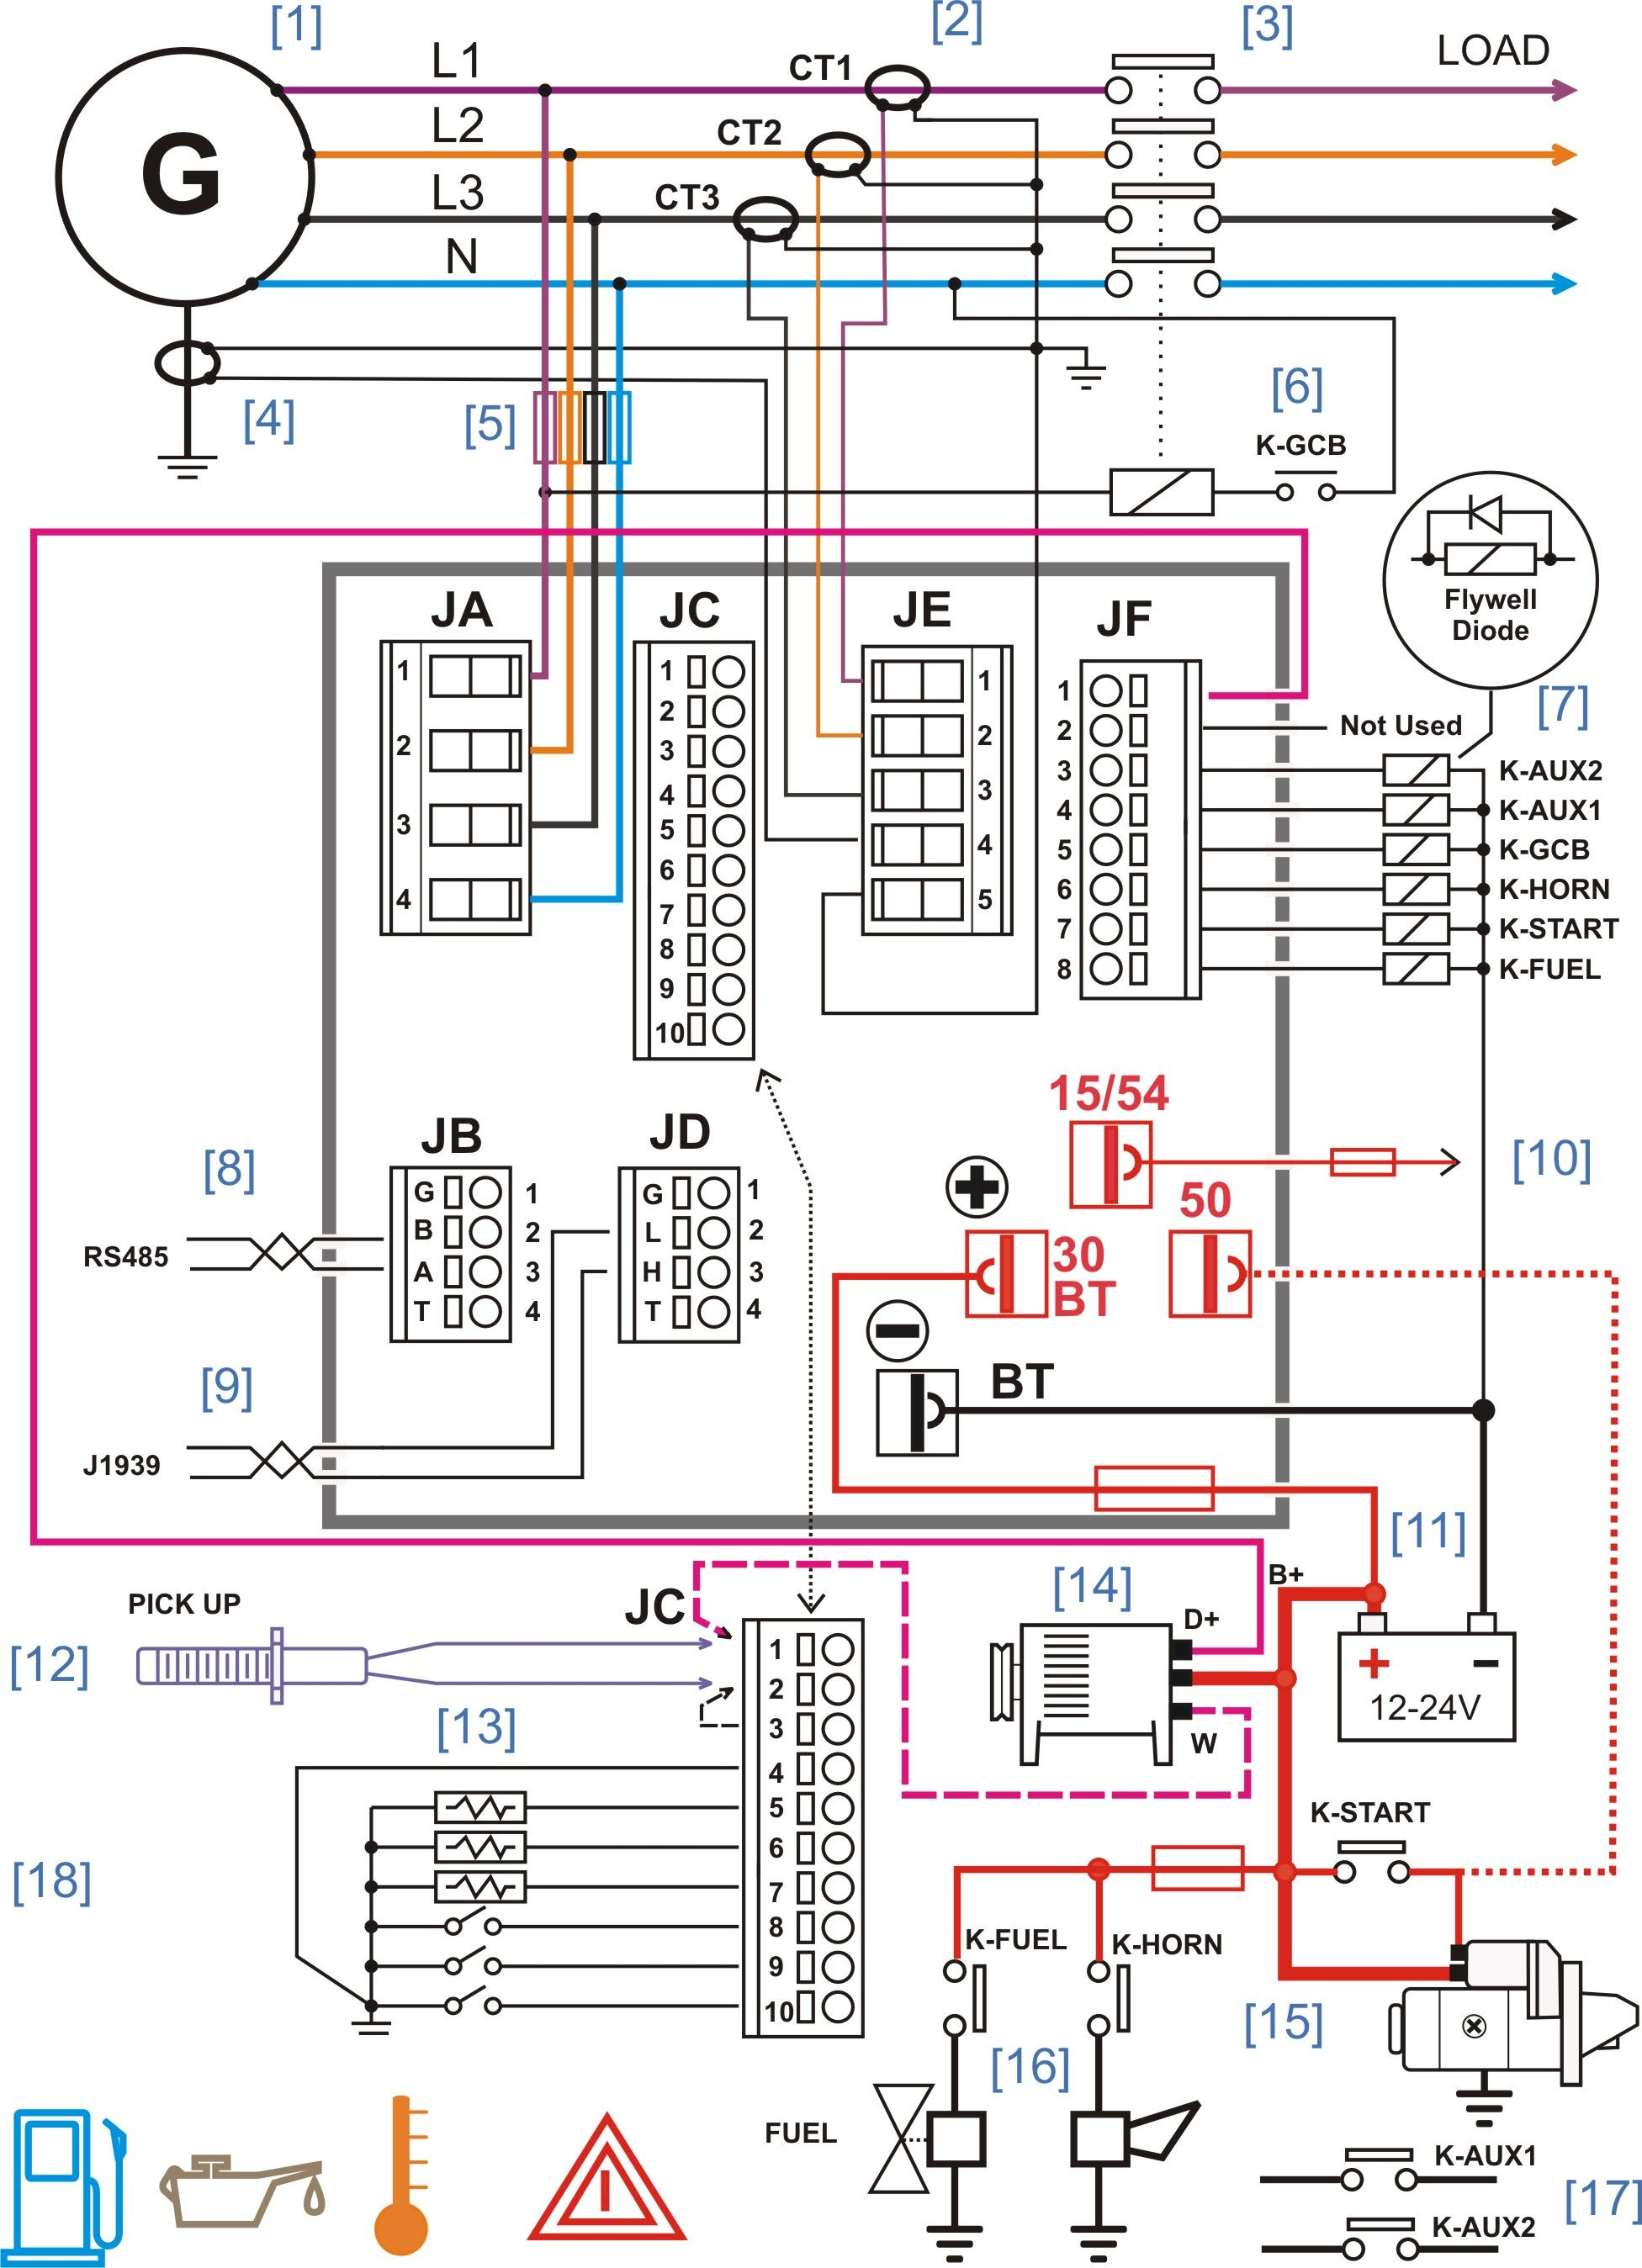 Wiring Diagram Electric Fuse Box Diagram Electric Meter To Panel Wire